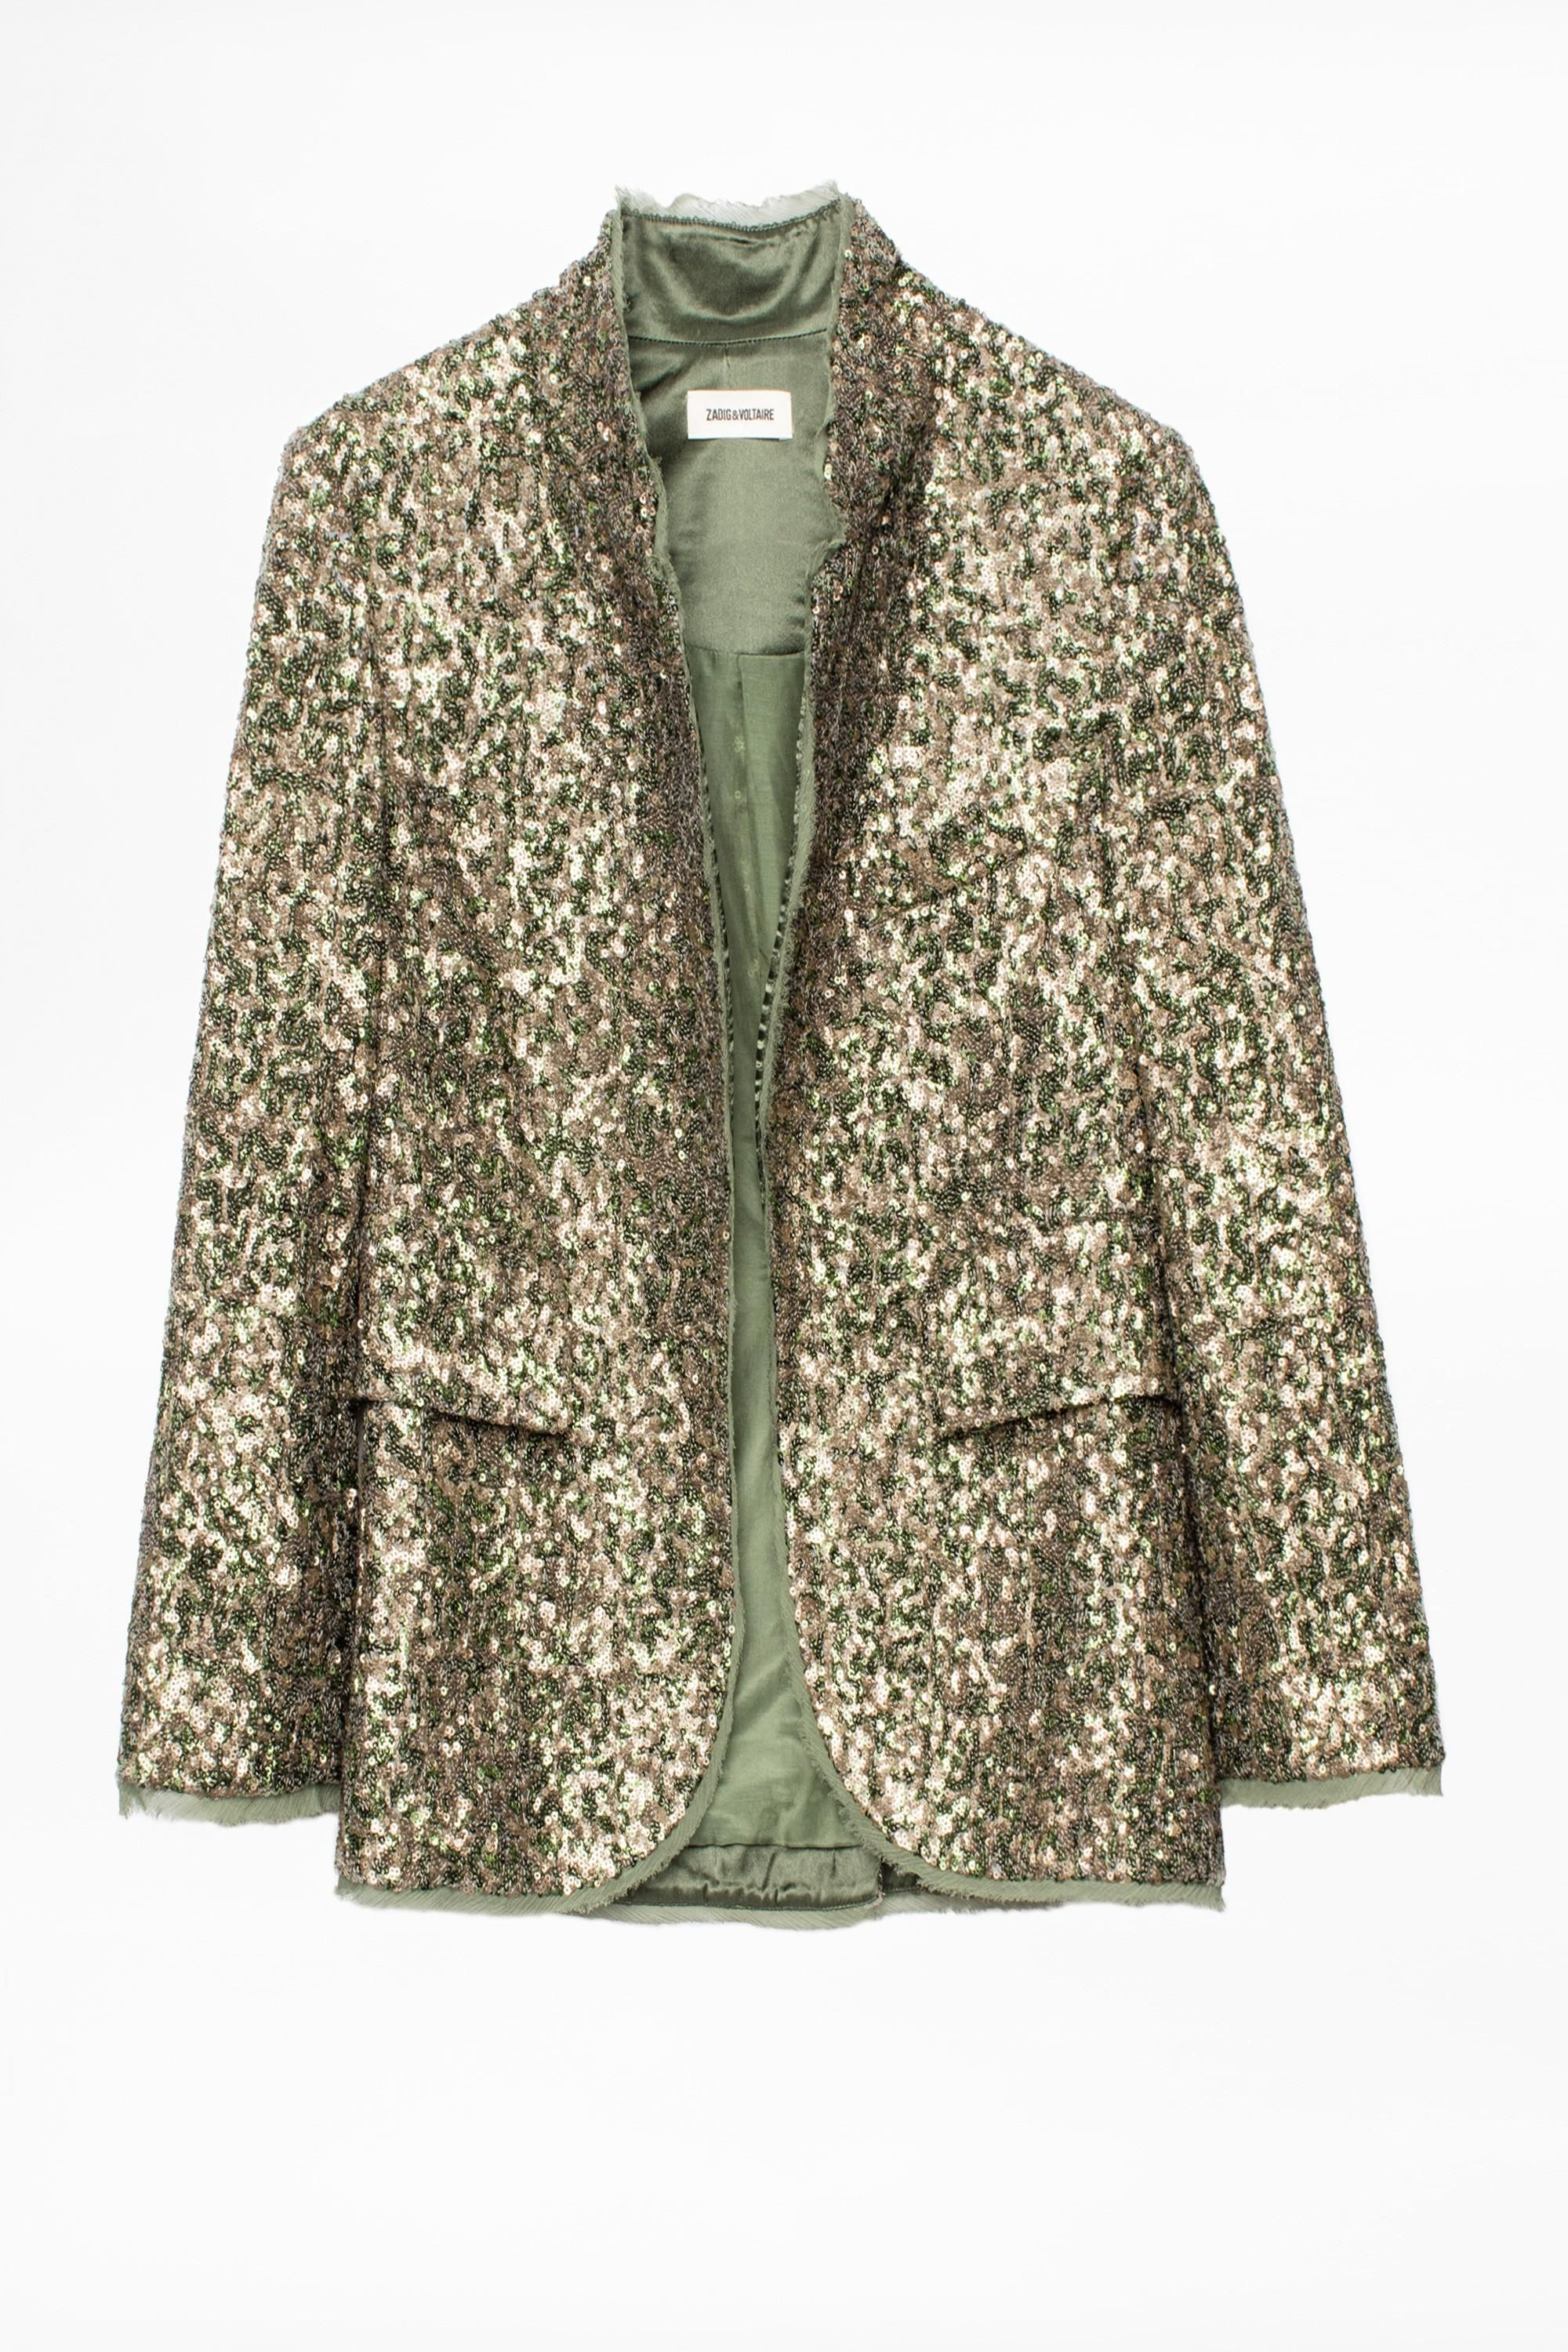 682ccf4e Verys Sequin Jacket - jacket women's | Zadig&Voltaire | :: STYLISH ...